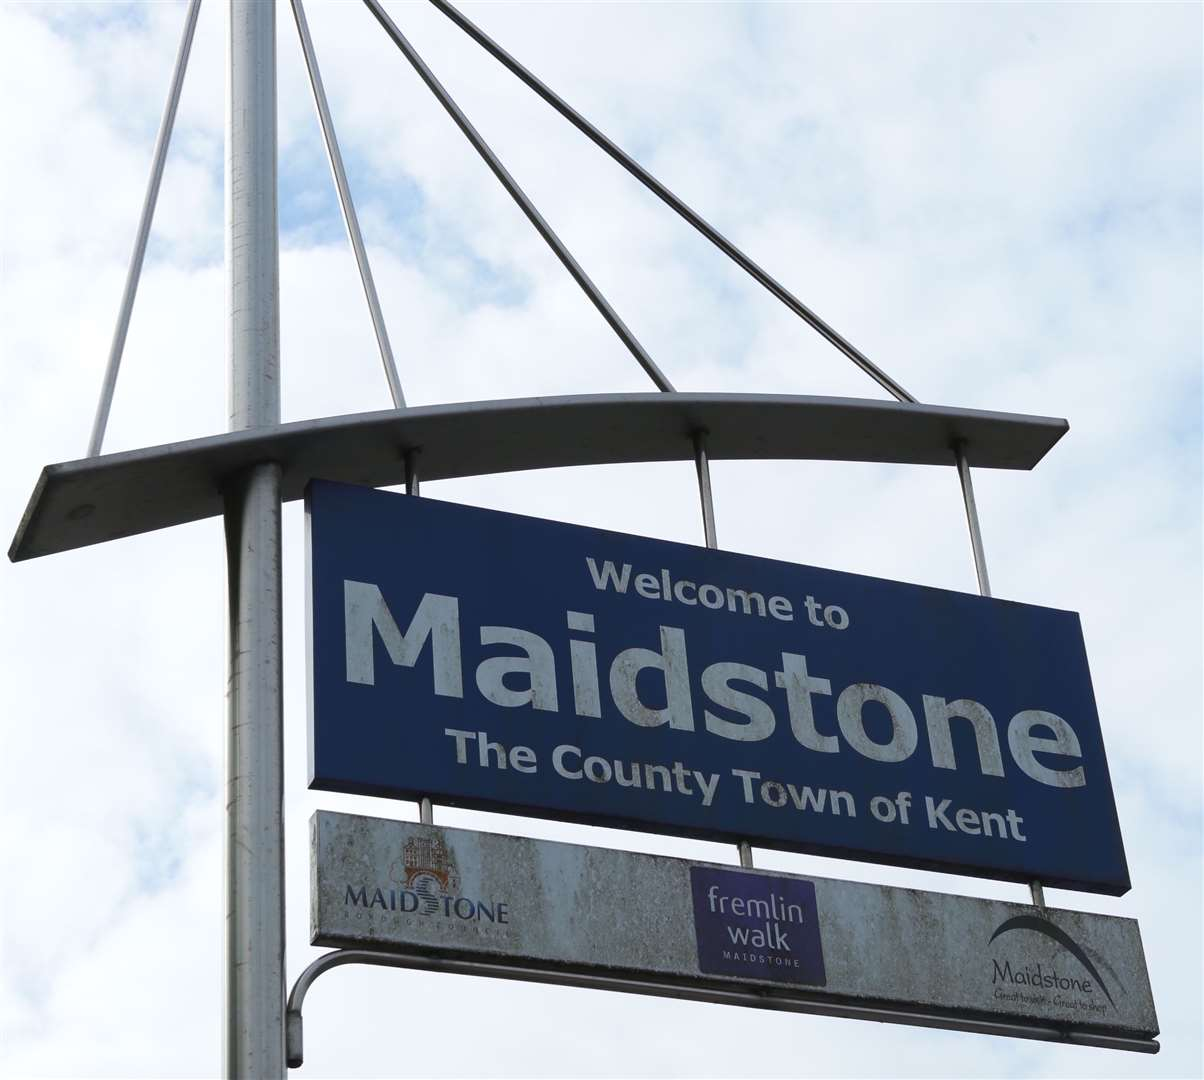 Welcome to Maidstone sign in London Road. Picture: Martin Apps